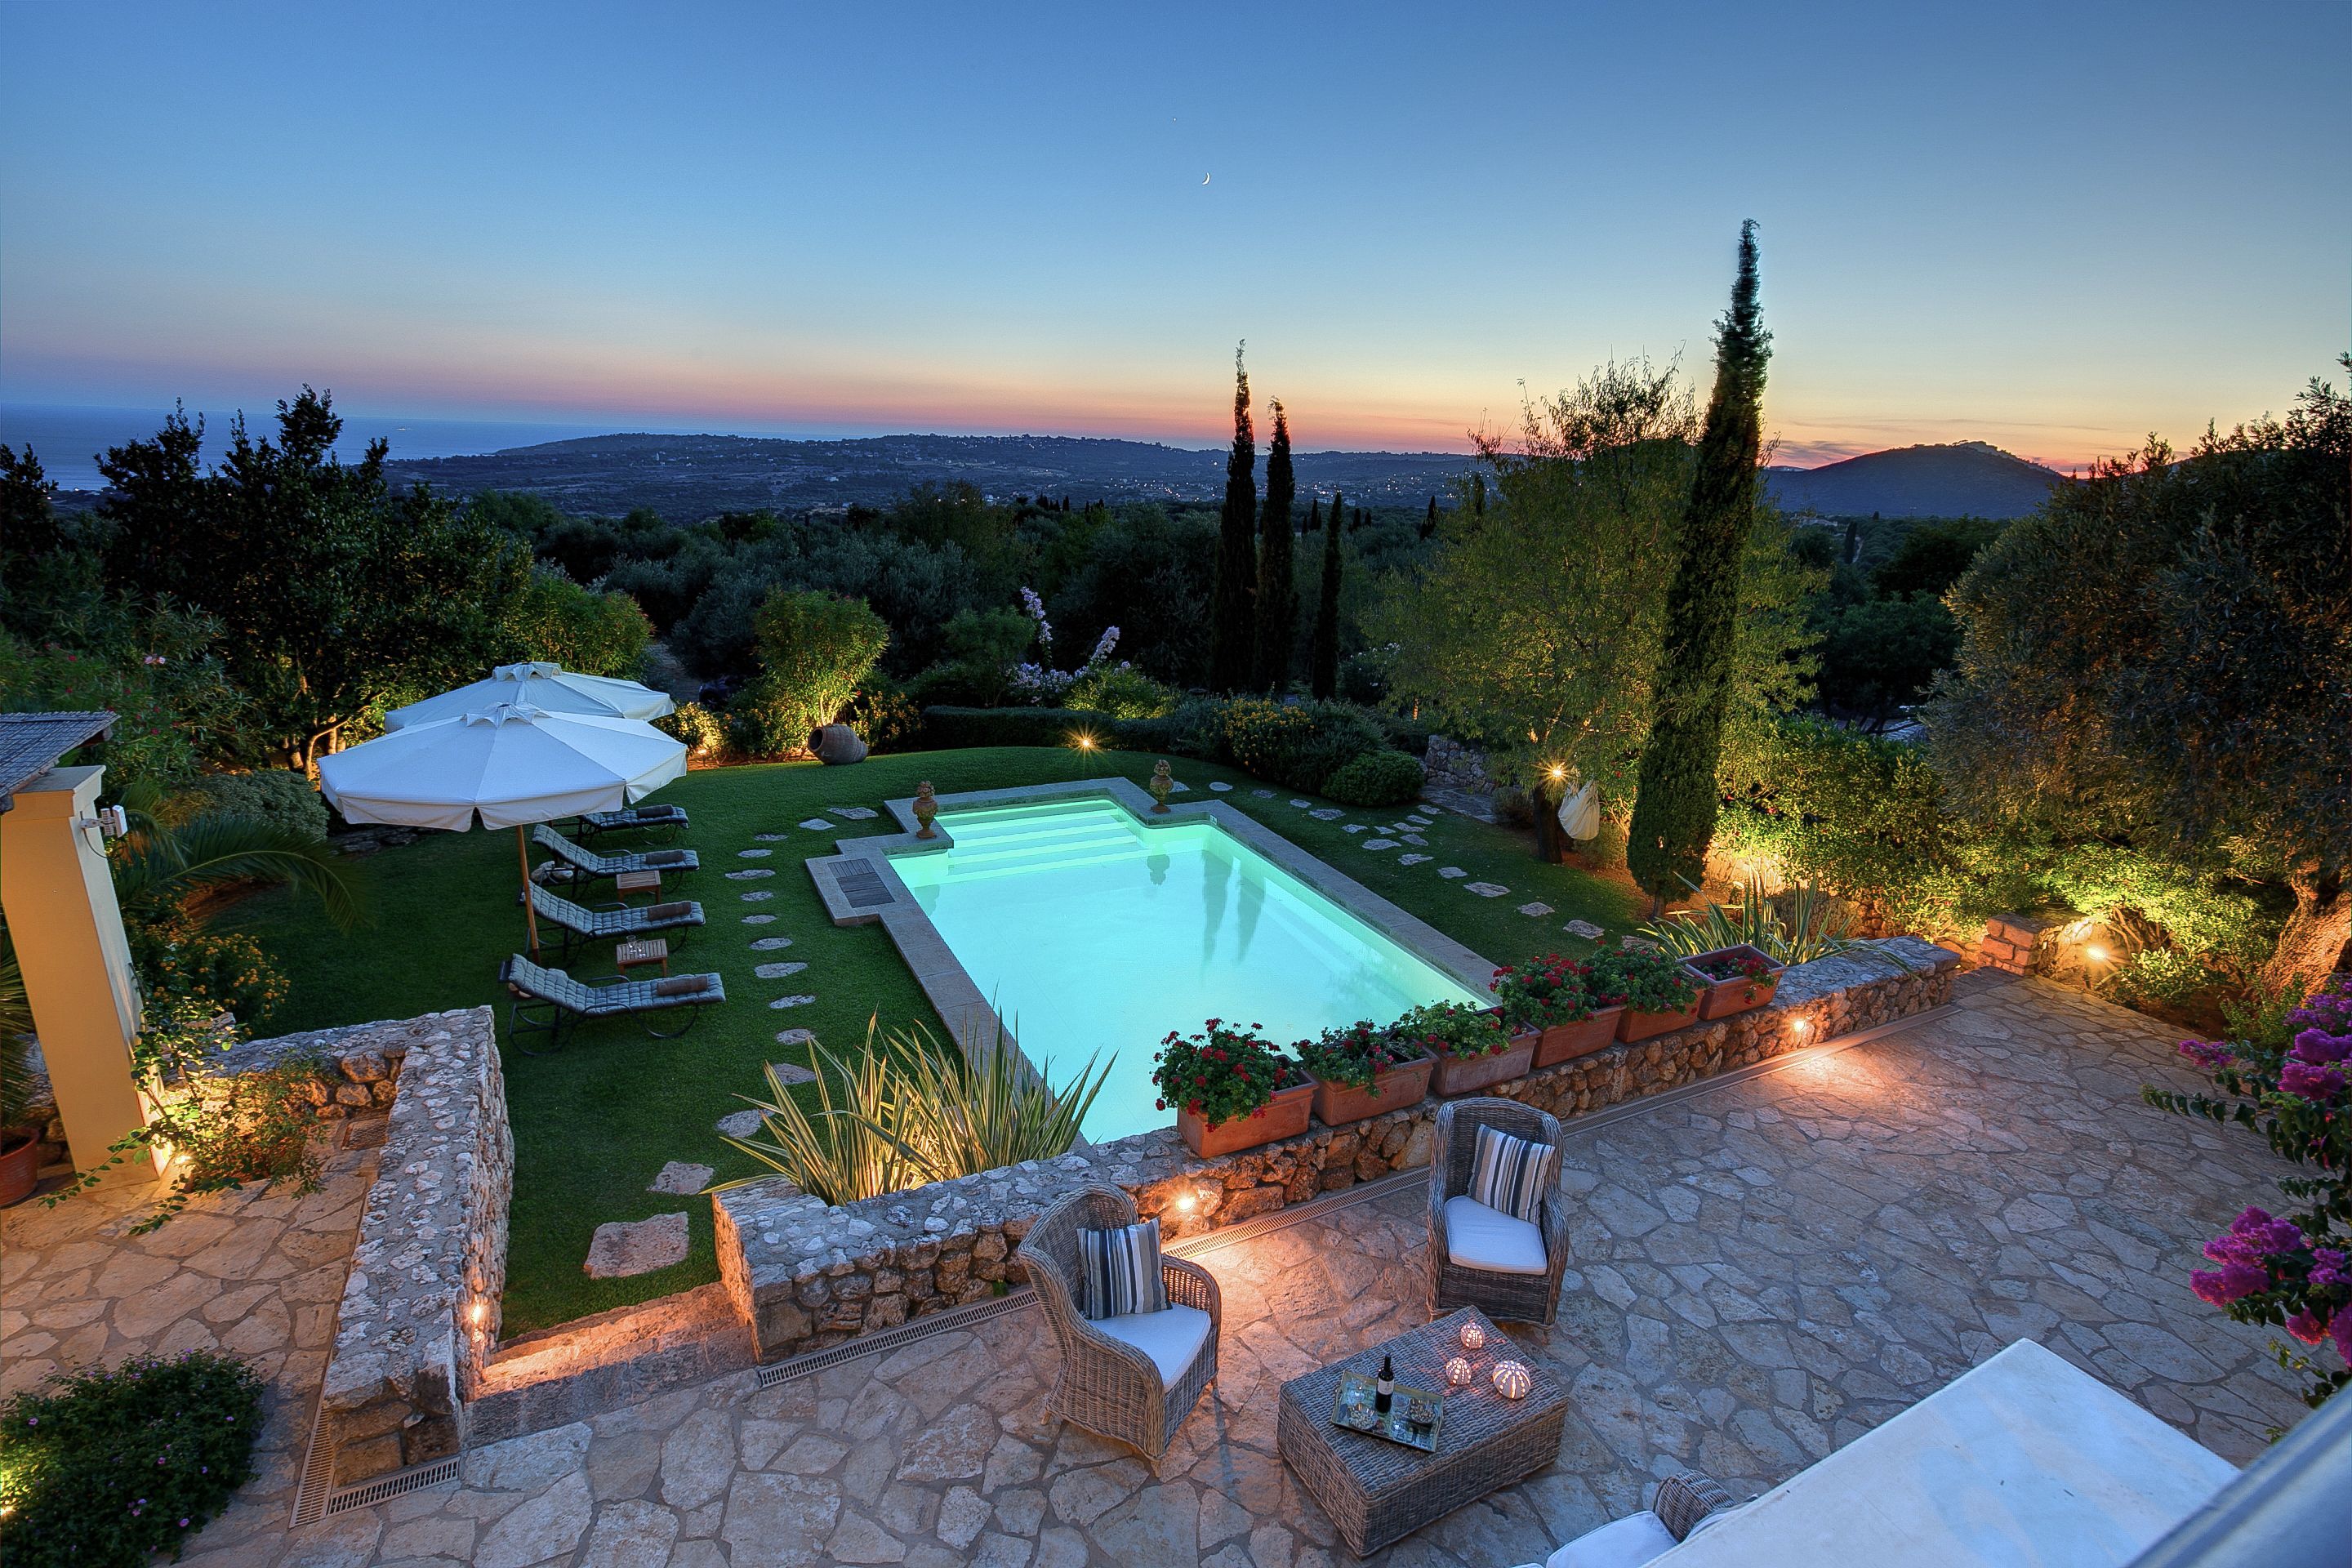 luxury villa rental, Greece, IONCEP 1701